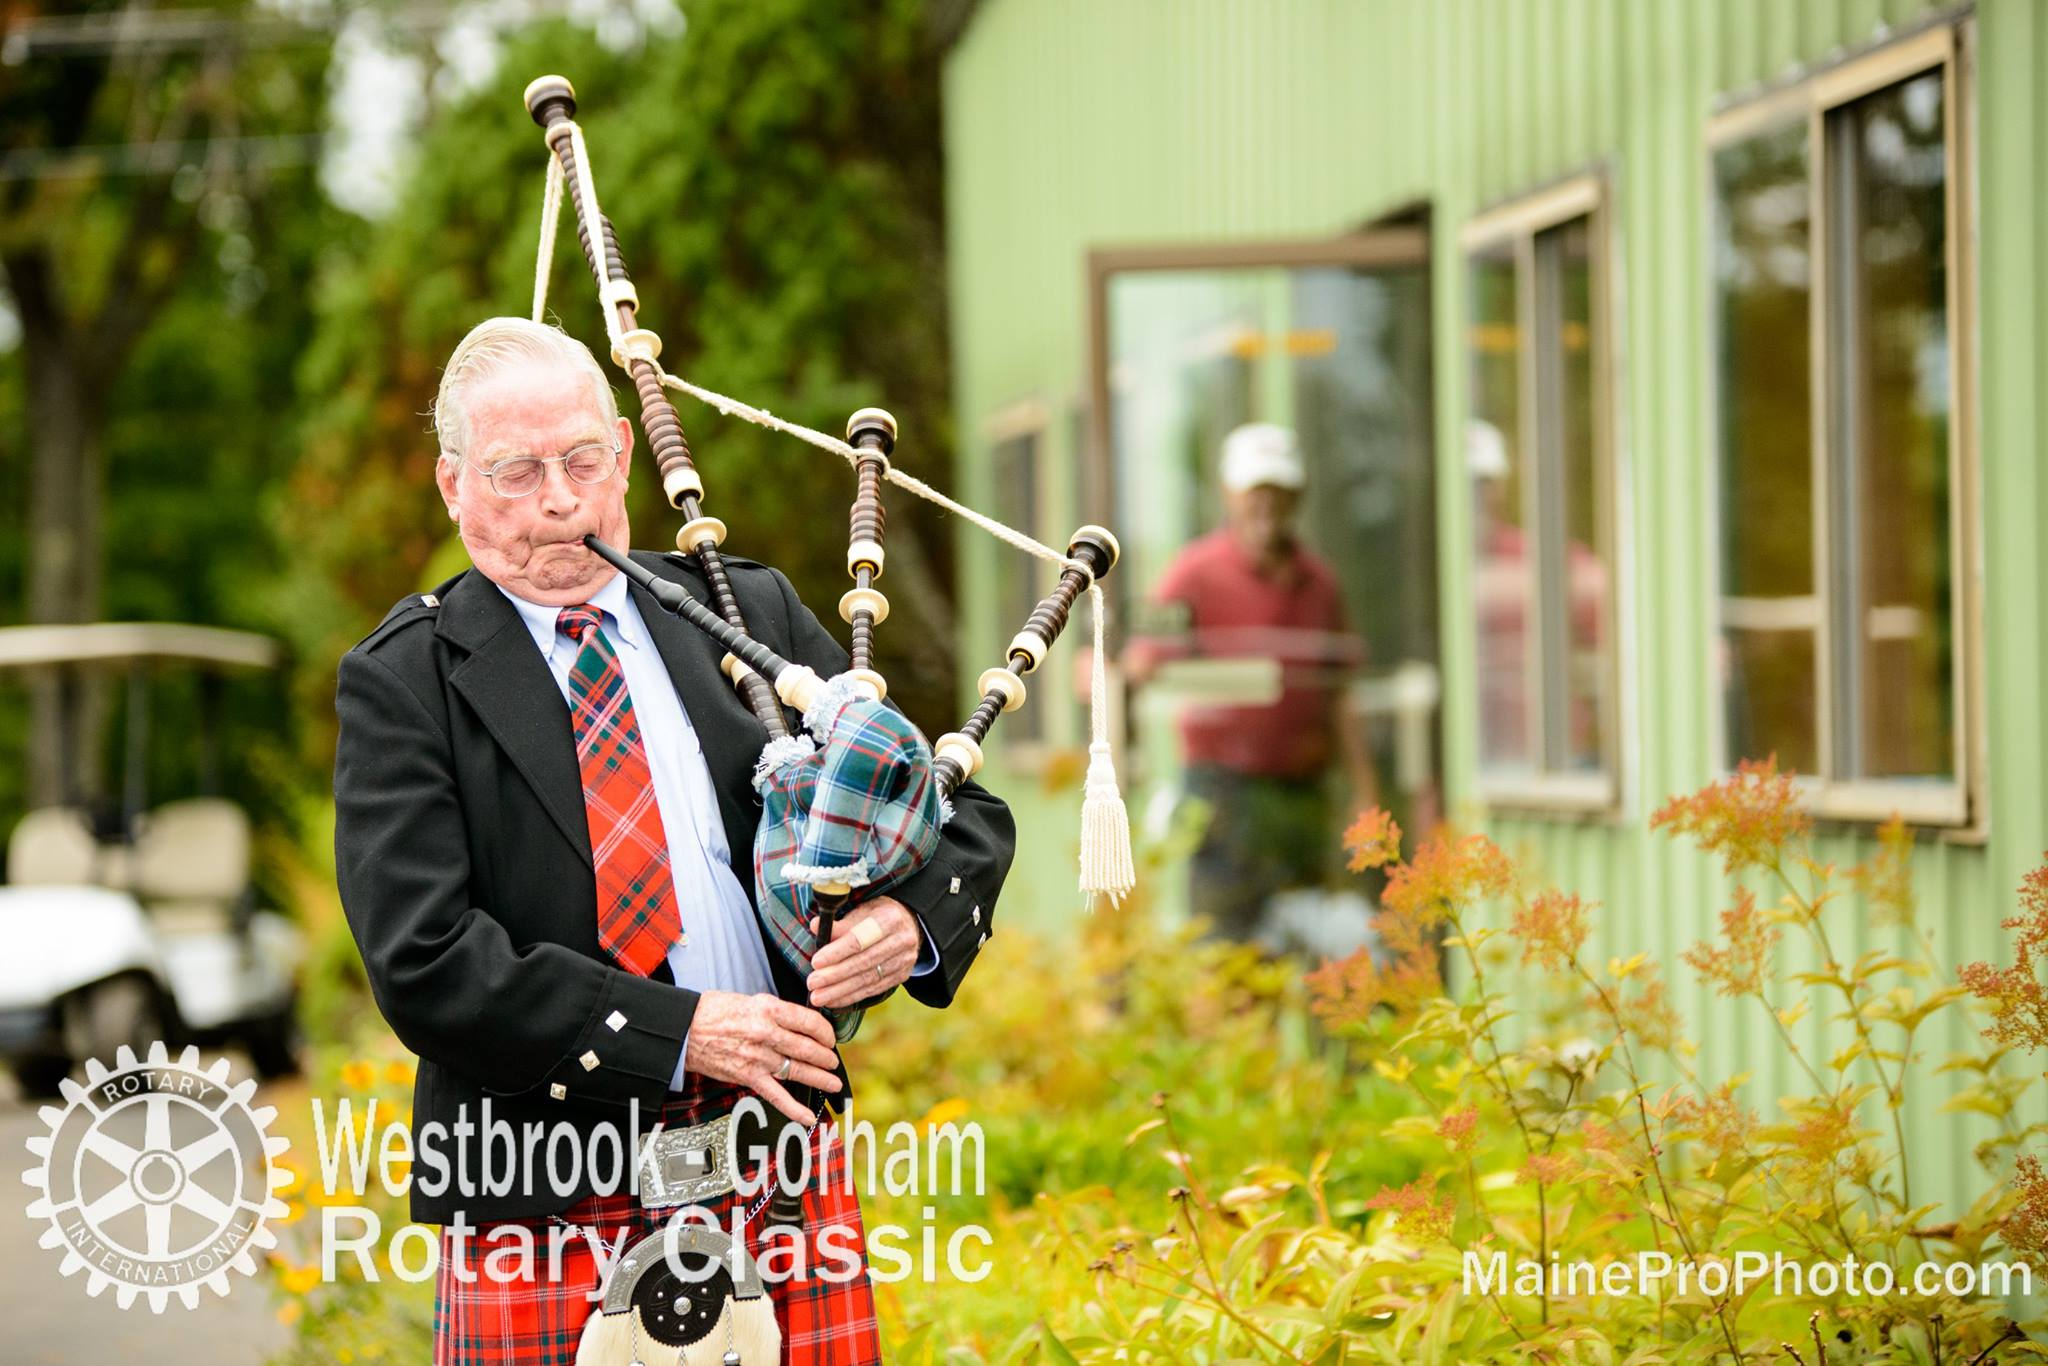 25th Annual Rotary Classic Golf Tournament gallery image #3